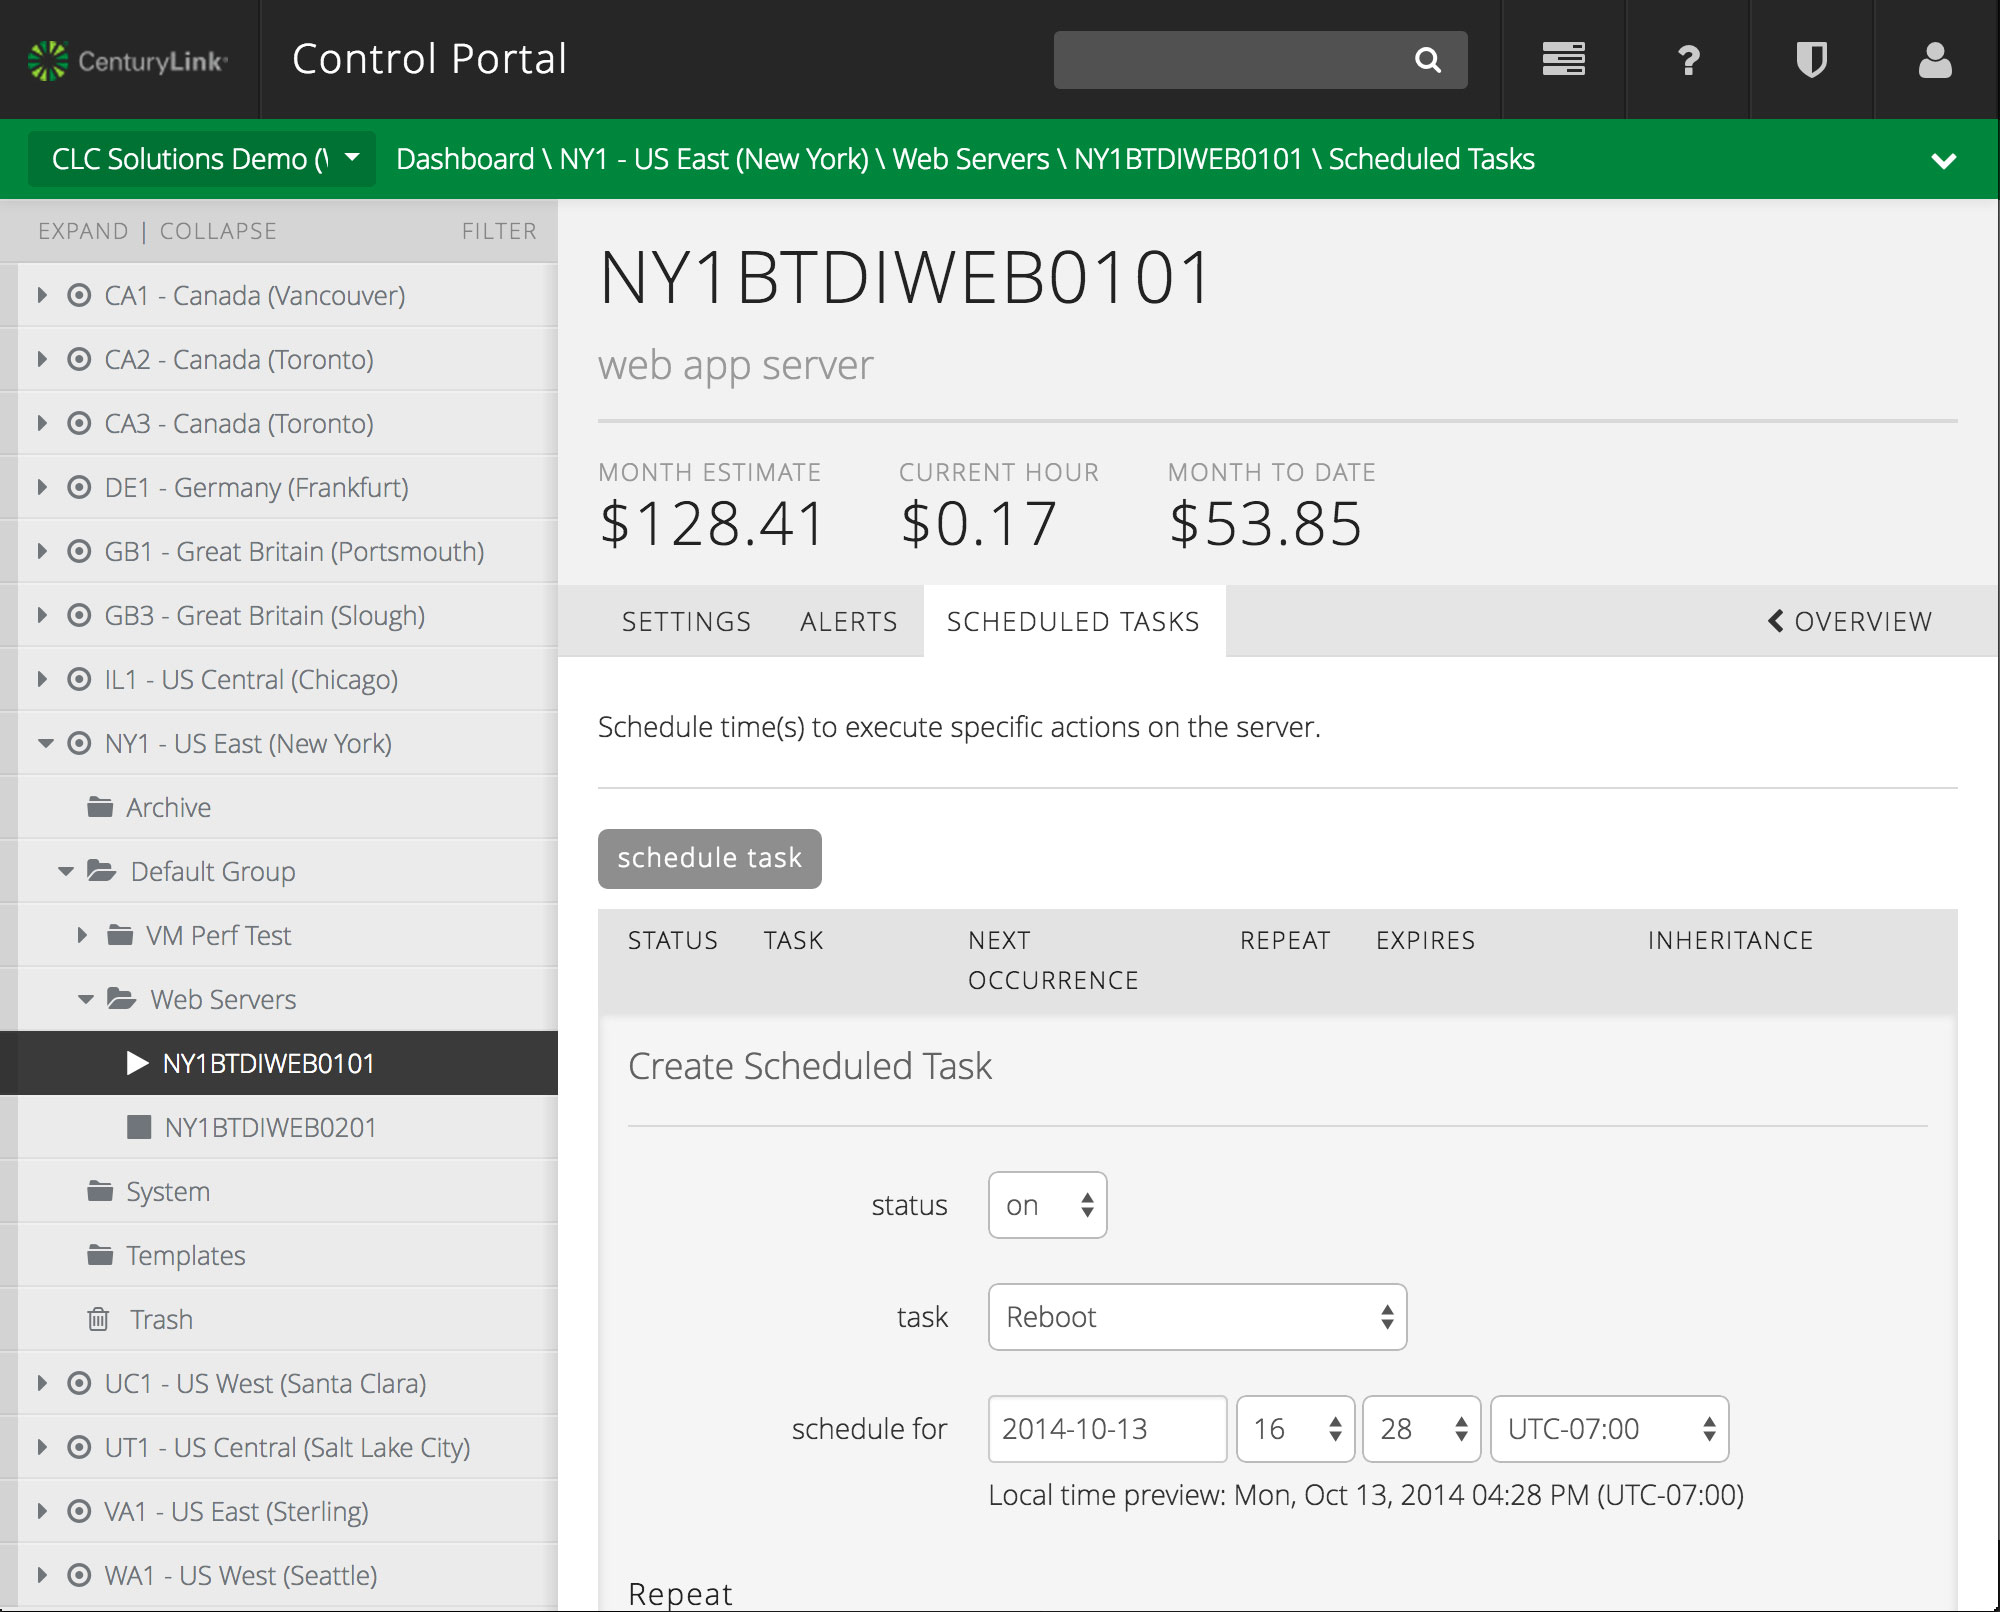 CenturyLink Cloud Control Portal has powerful scheduled tasks for cloud servers